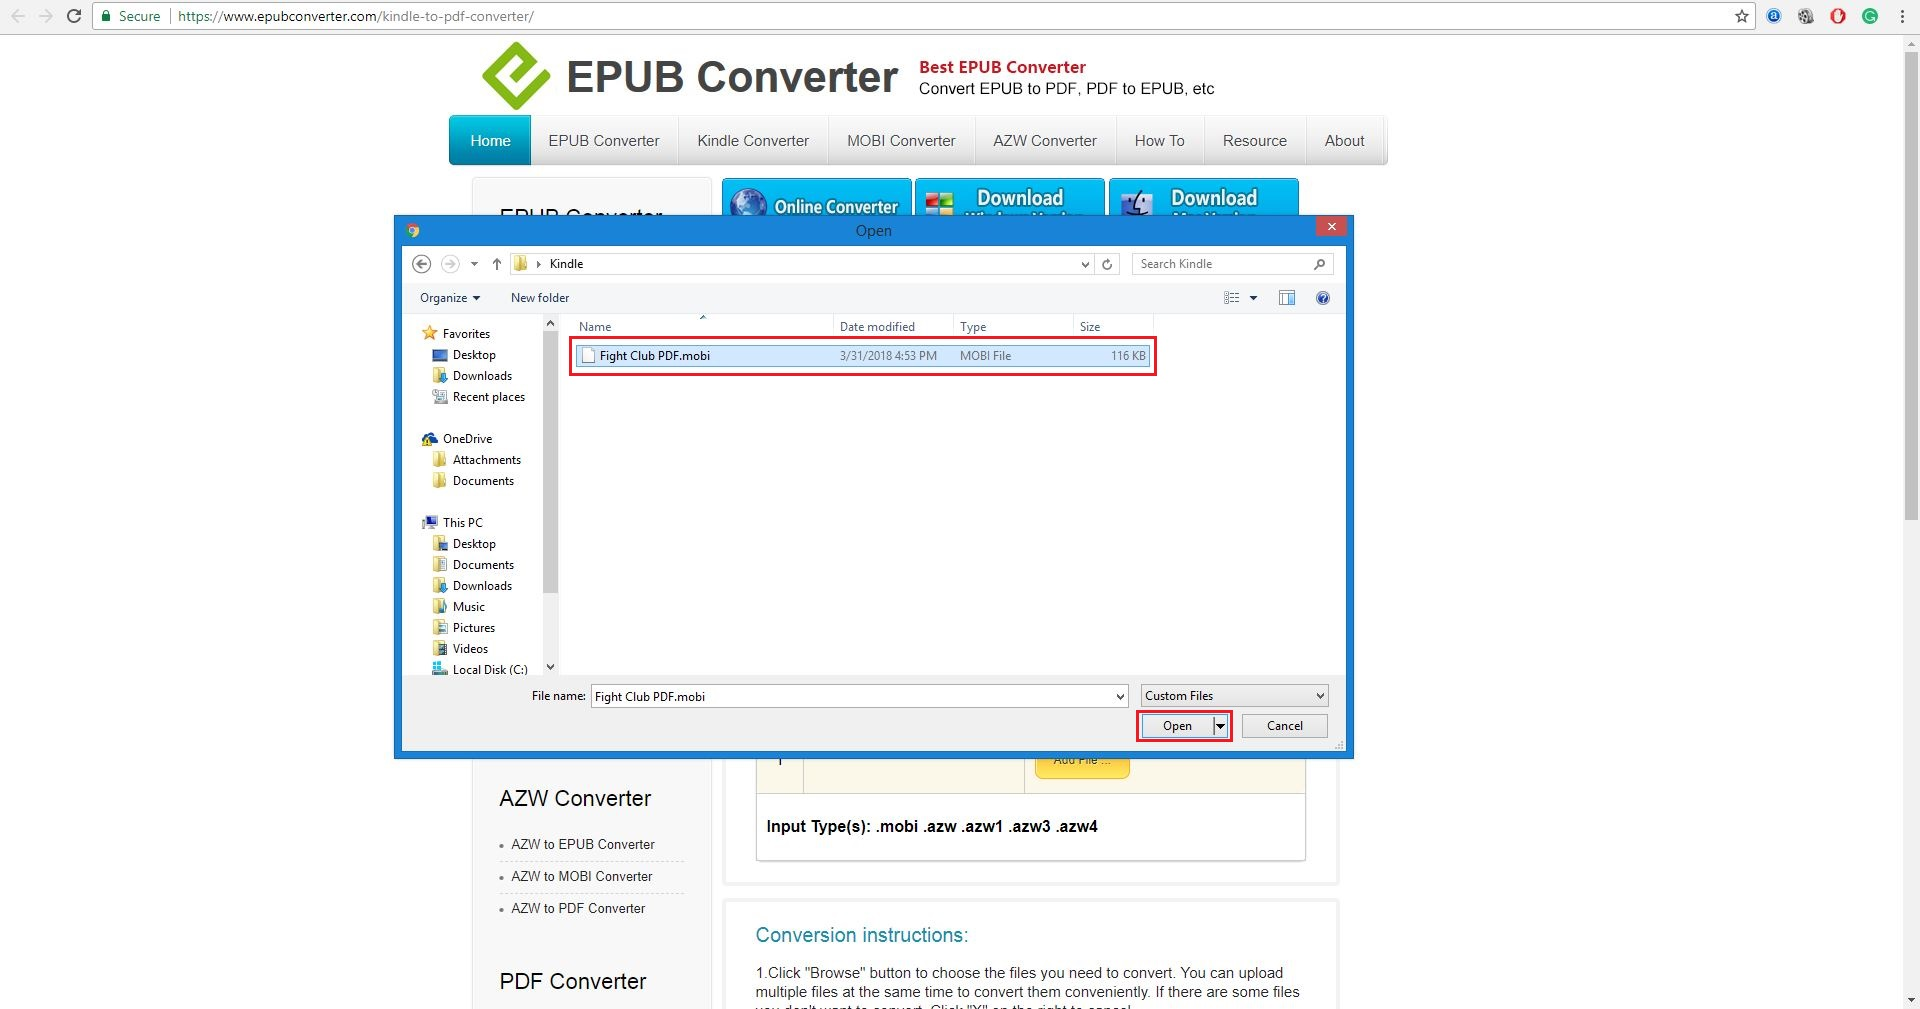 How To Convert Kindle Books to PDF in Minute (Win, Mac, Android) | Ubergizmo